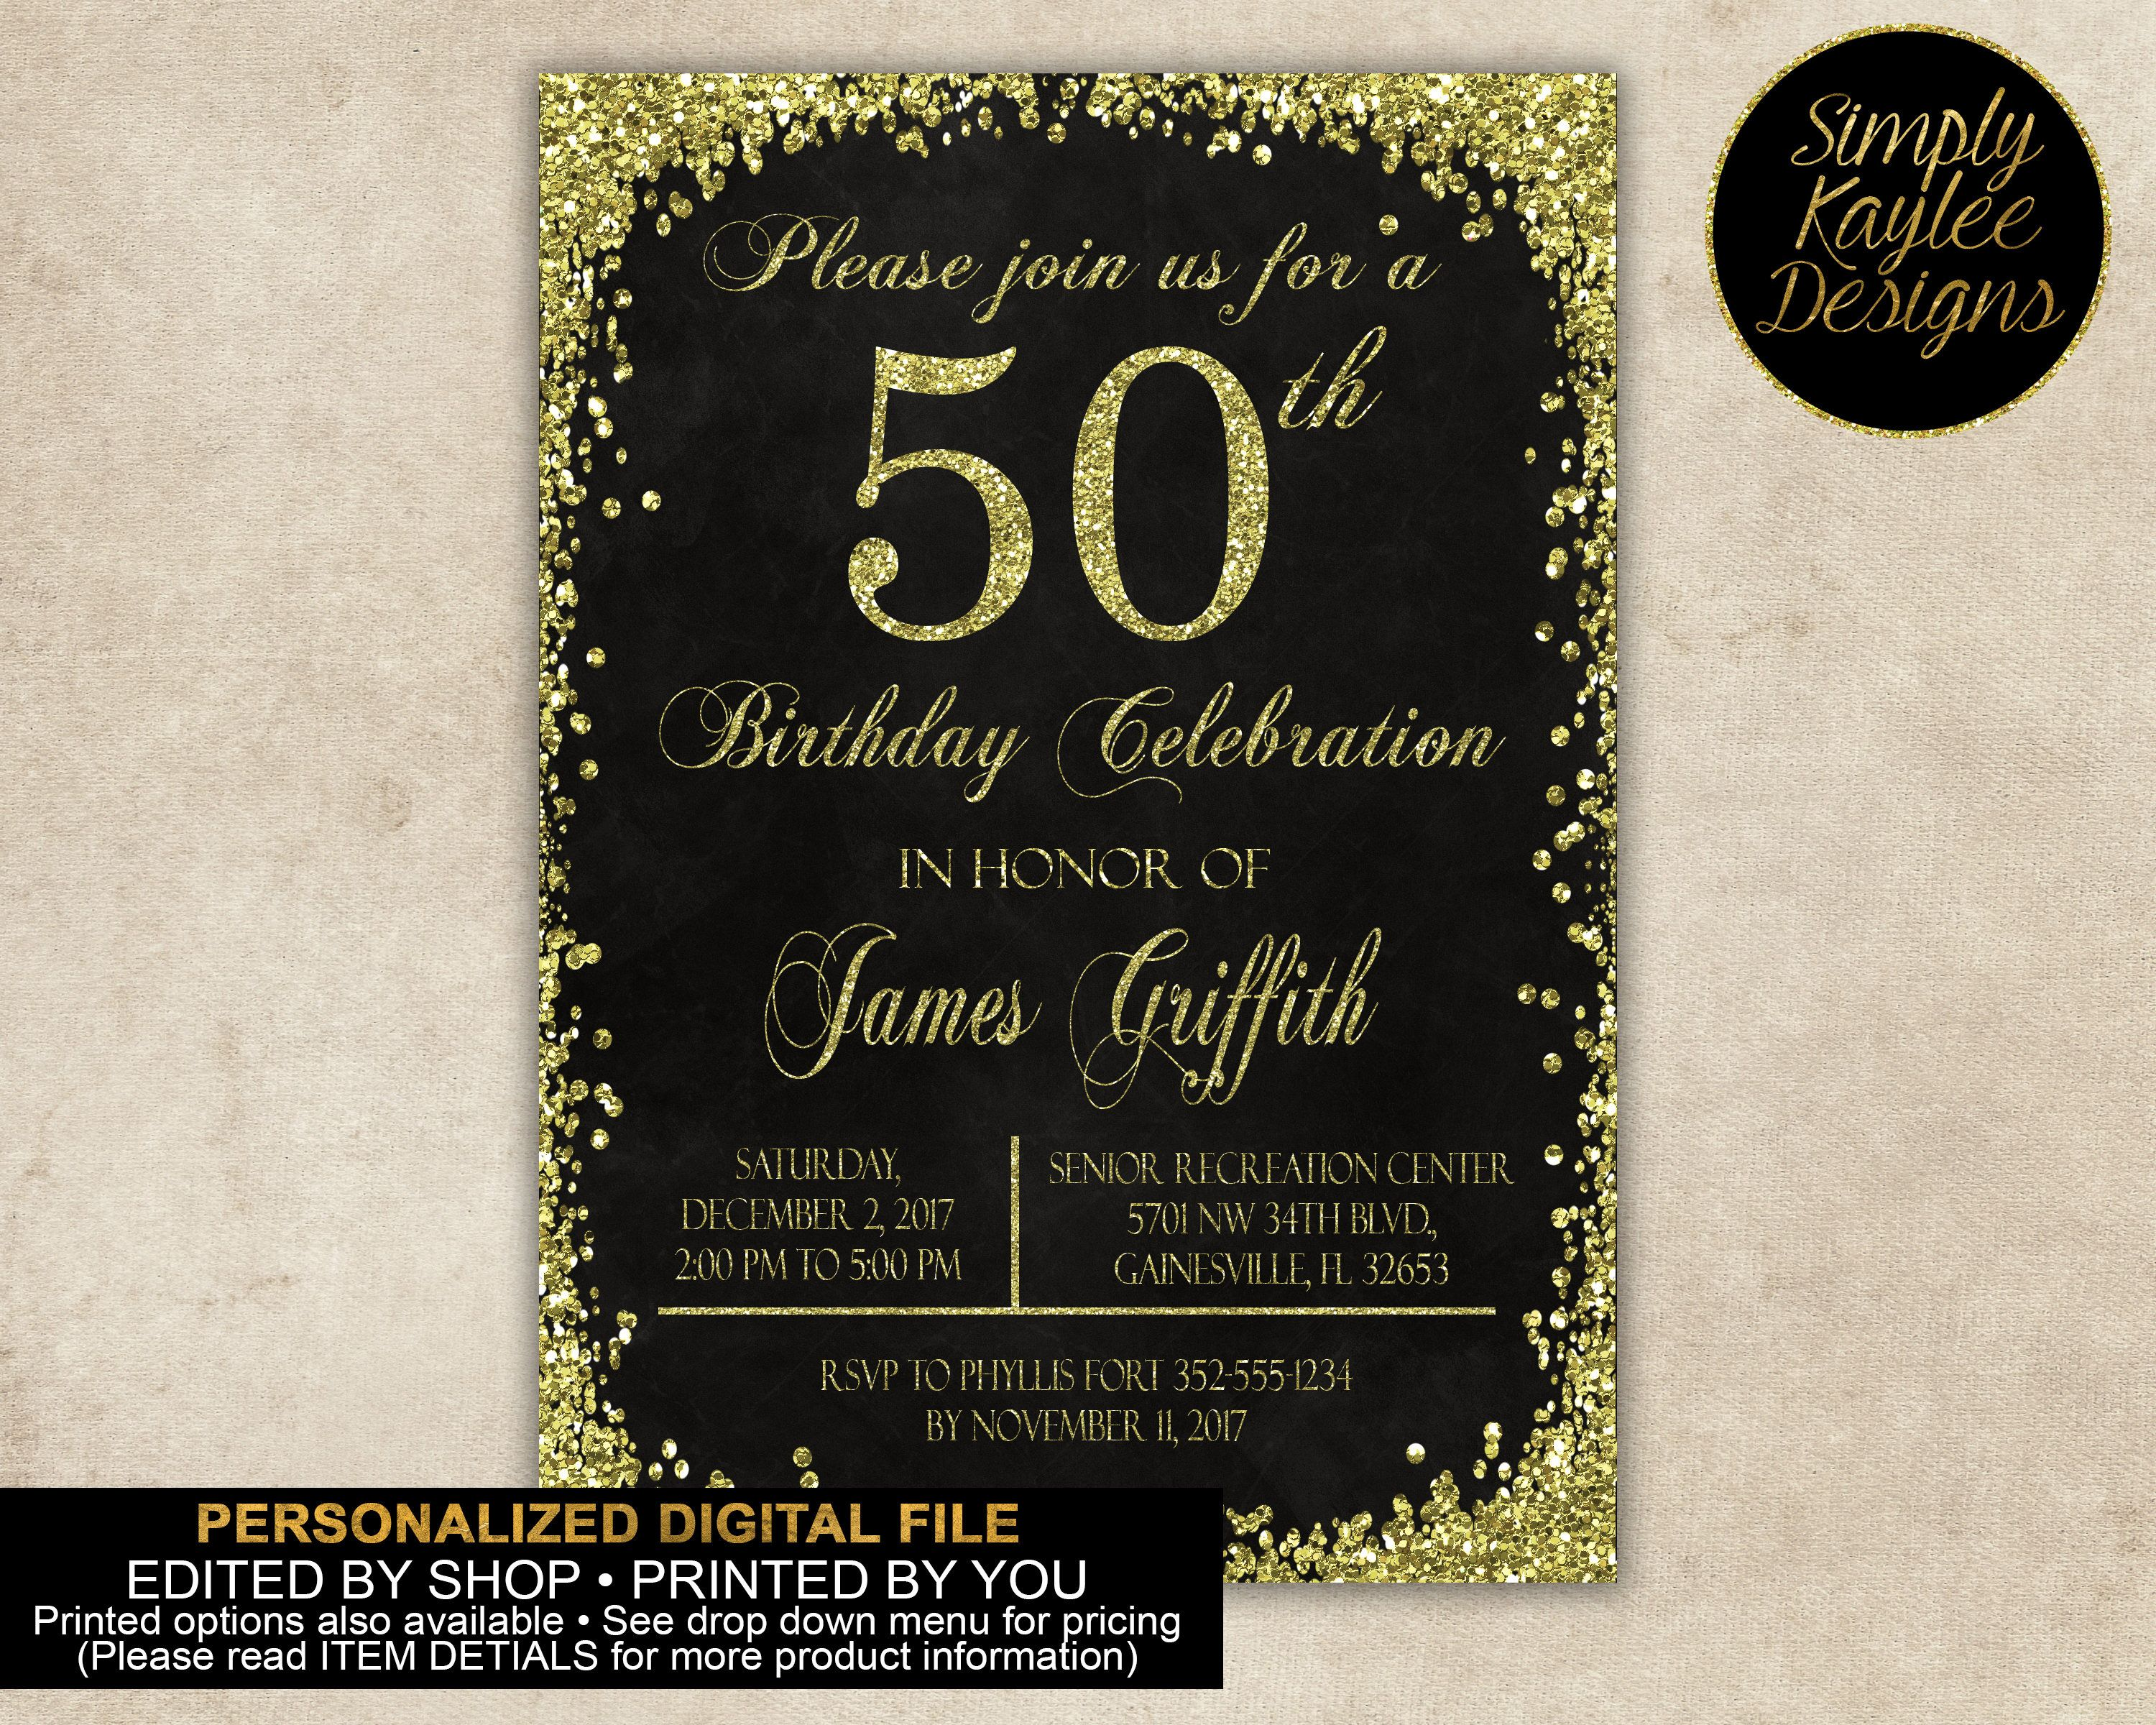 50 Birthday Parties Black And Gold 50th Invitation By SimplyKayleeDesigns On Etsy